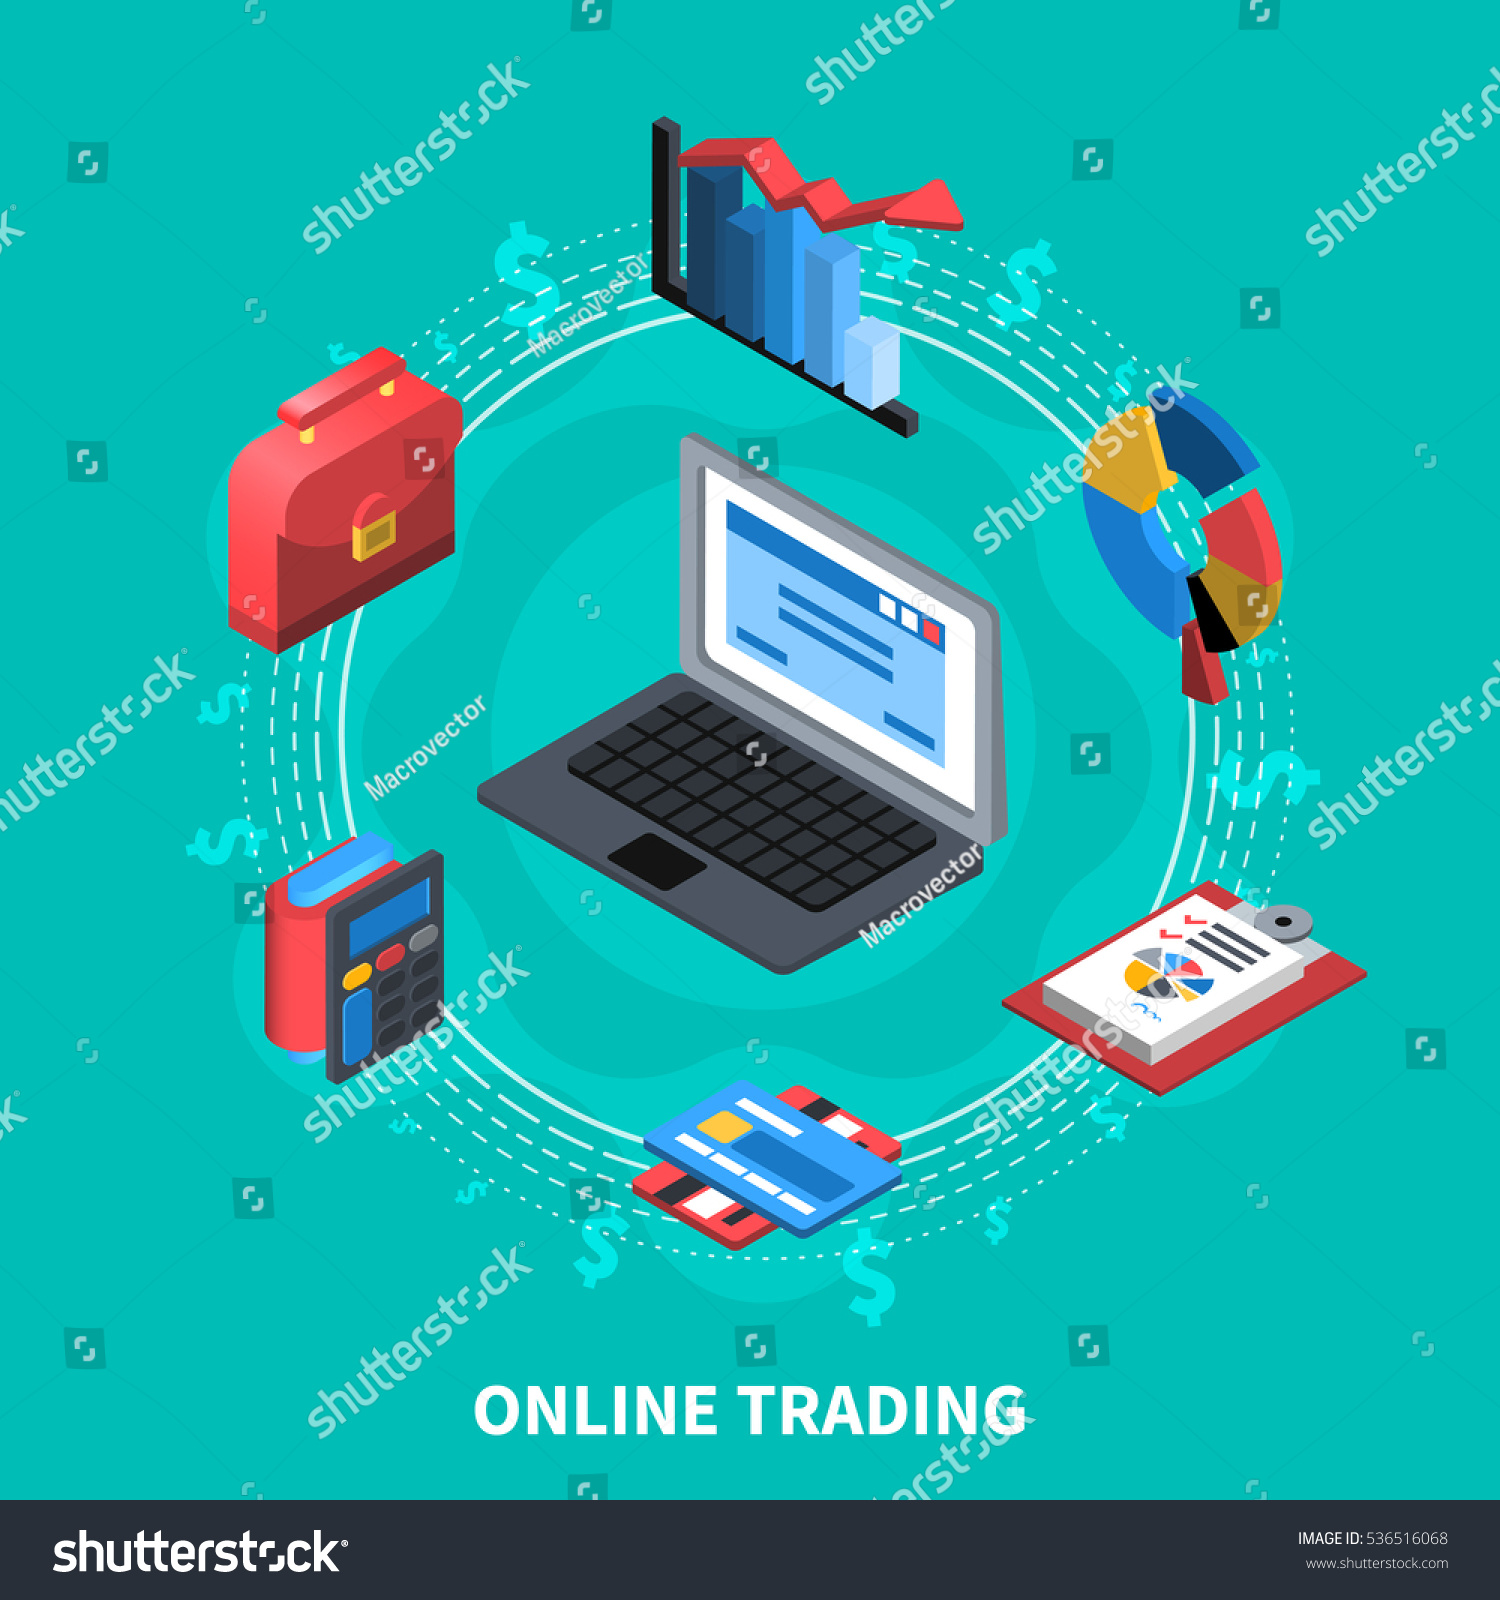 Online Trading Financial Isometric Icons Round Stock Vector (Royalty ...